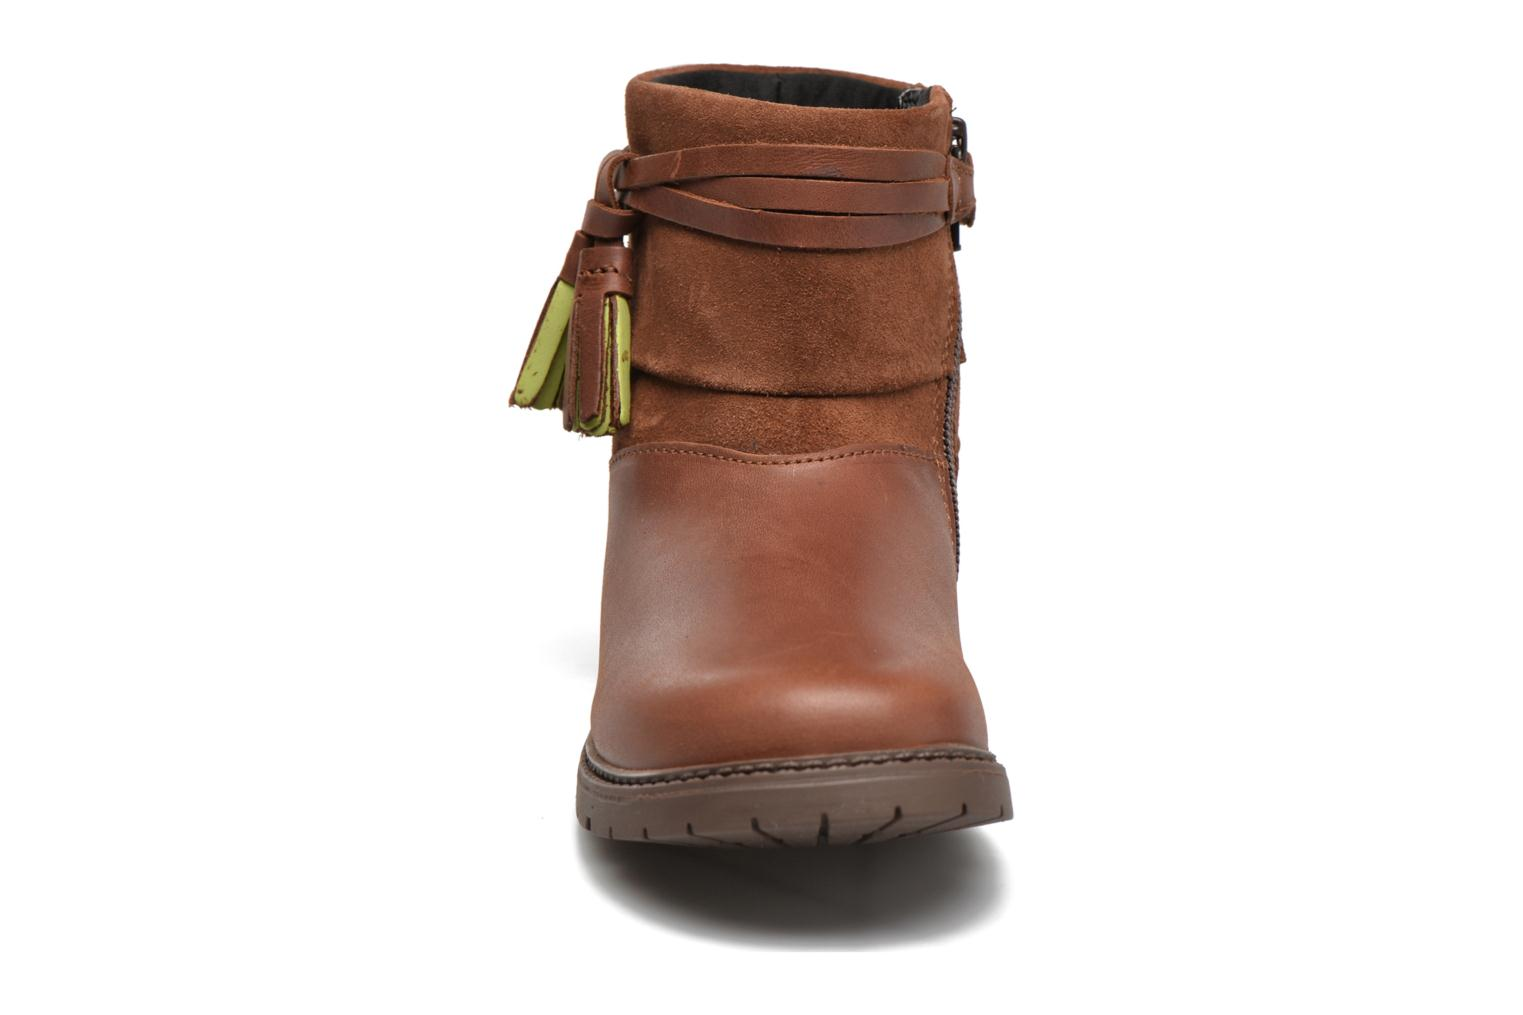 Aria Tan leather/suede